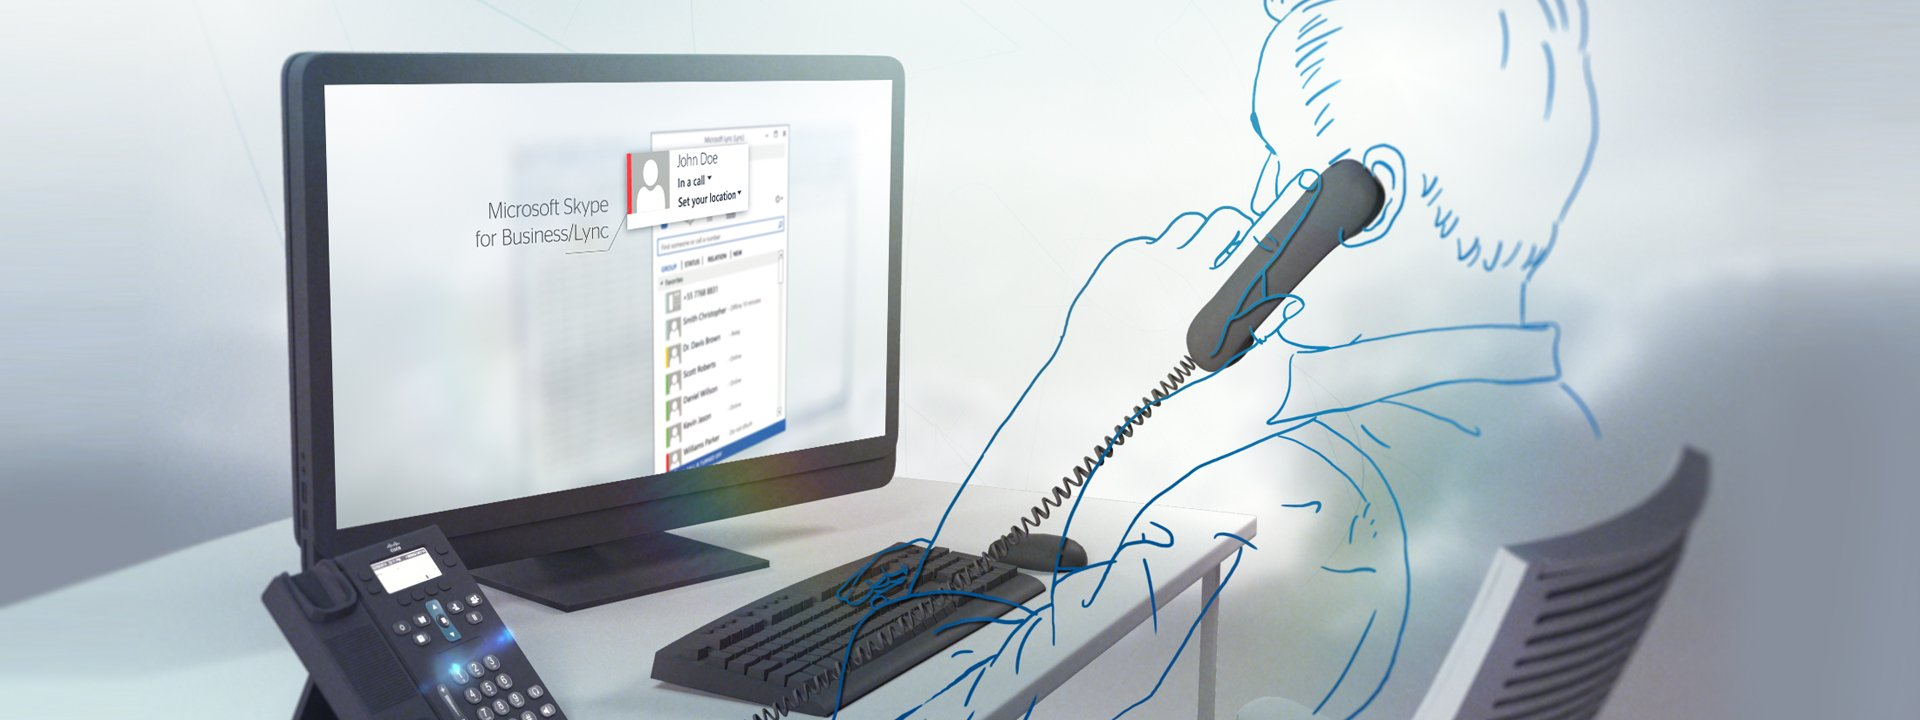 illustration of a man on a desktop with skype for business Intelligence presence